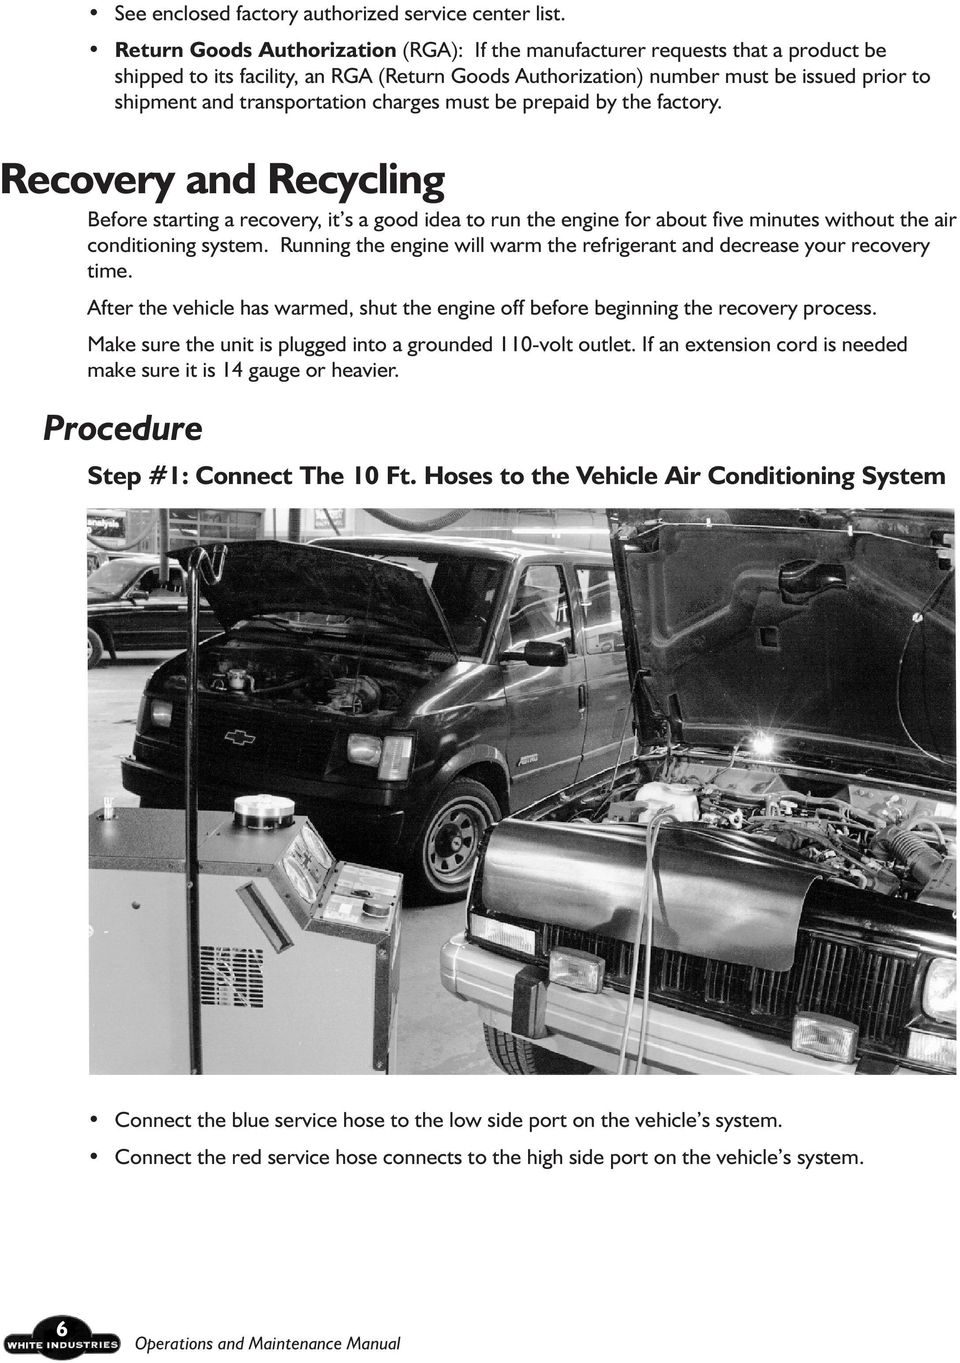 Chevrolet Sonic Repair Manual: Spacer Plate (12) - Case Side (Left)